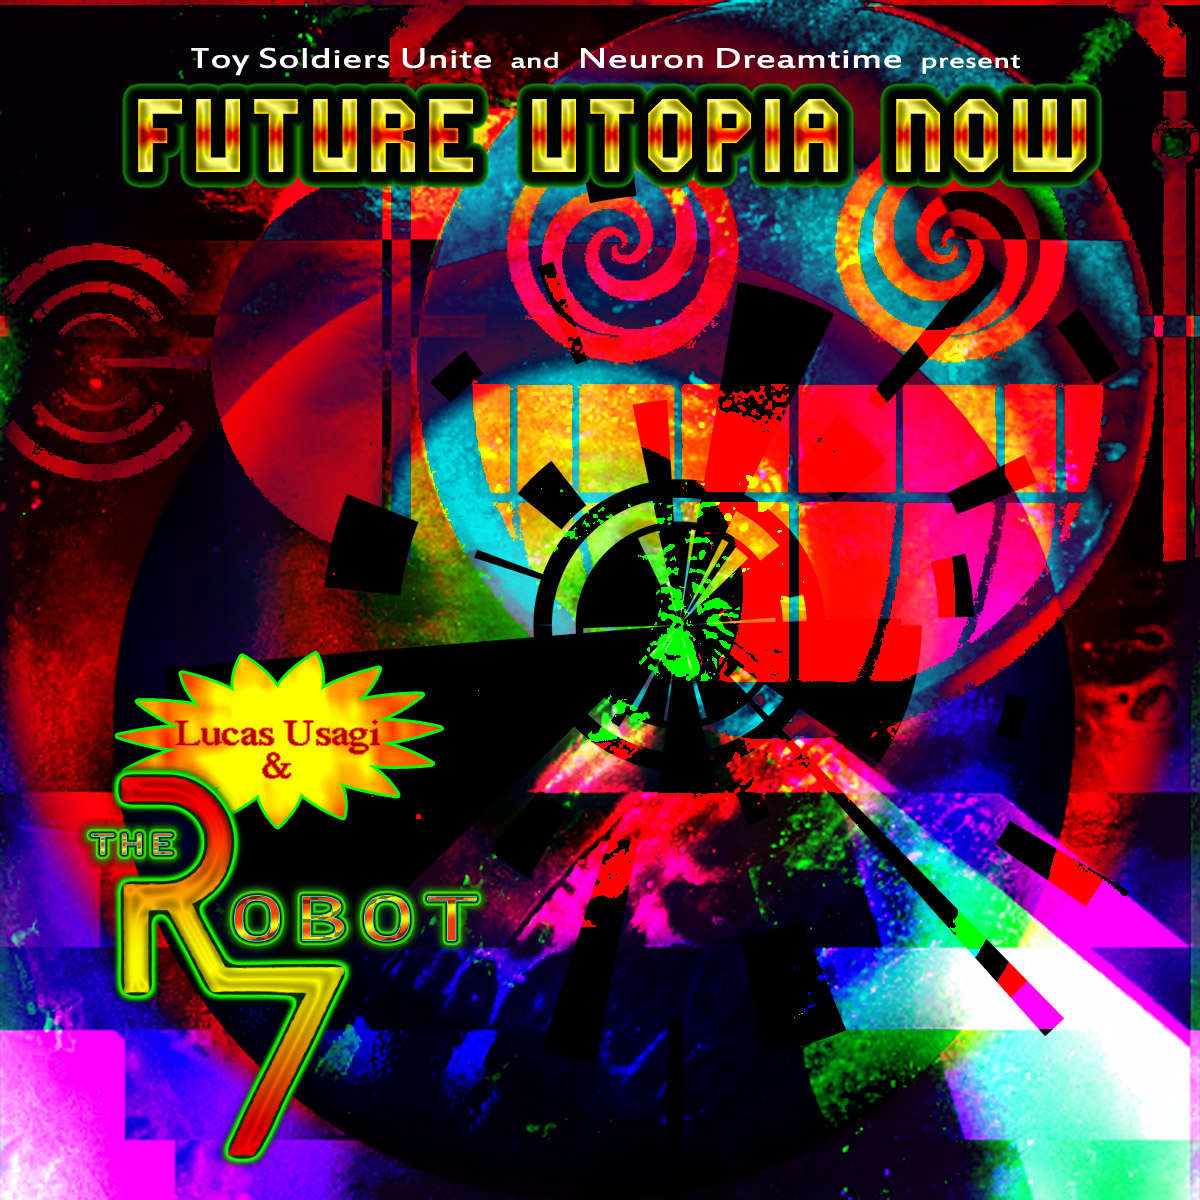 Lucas Usagi & The Robot 7 - Front Cover